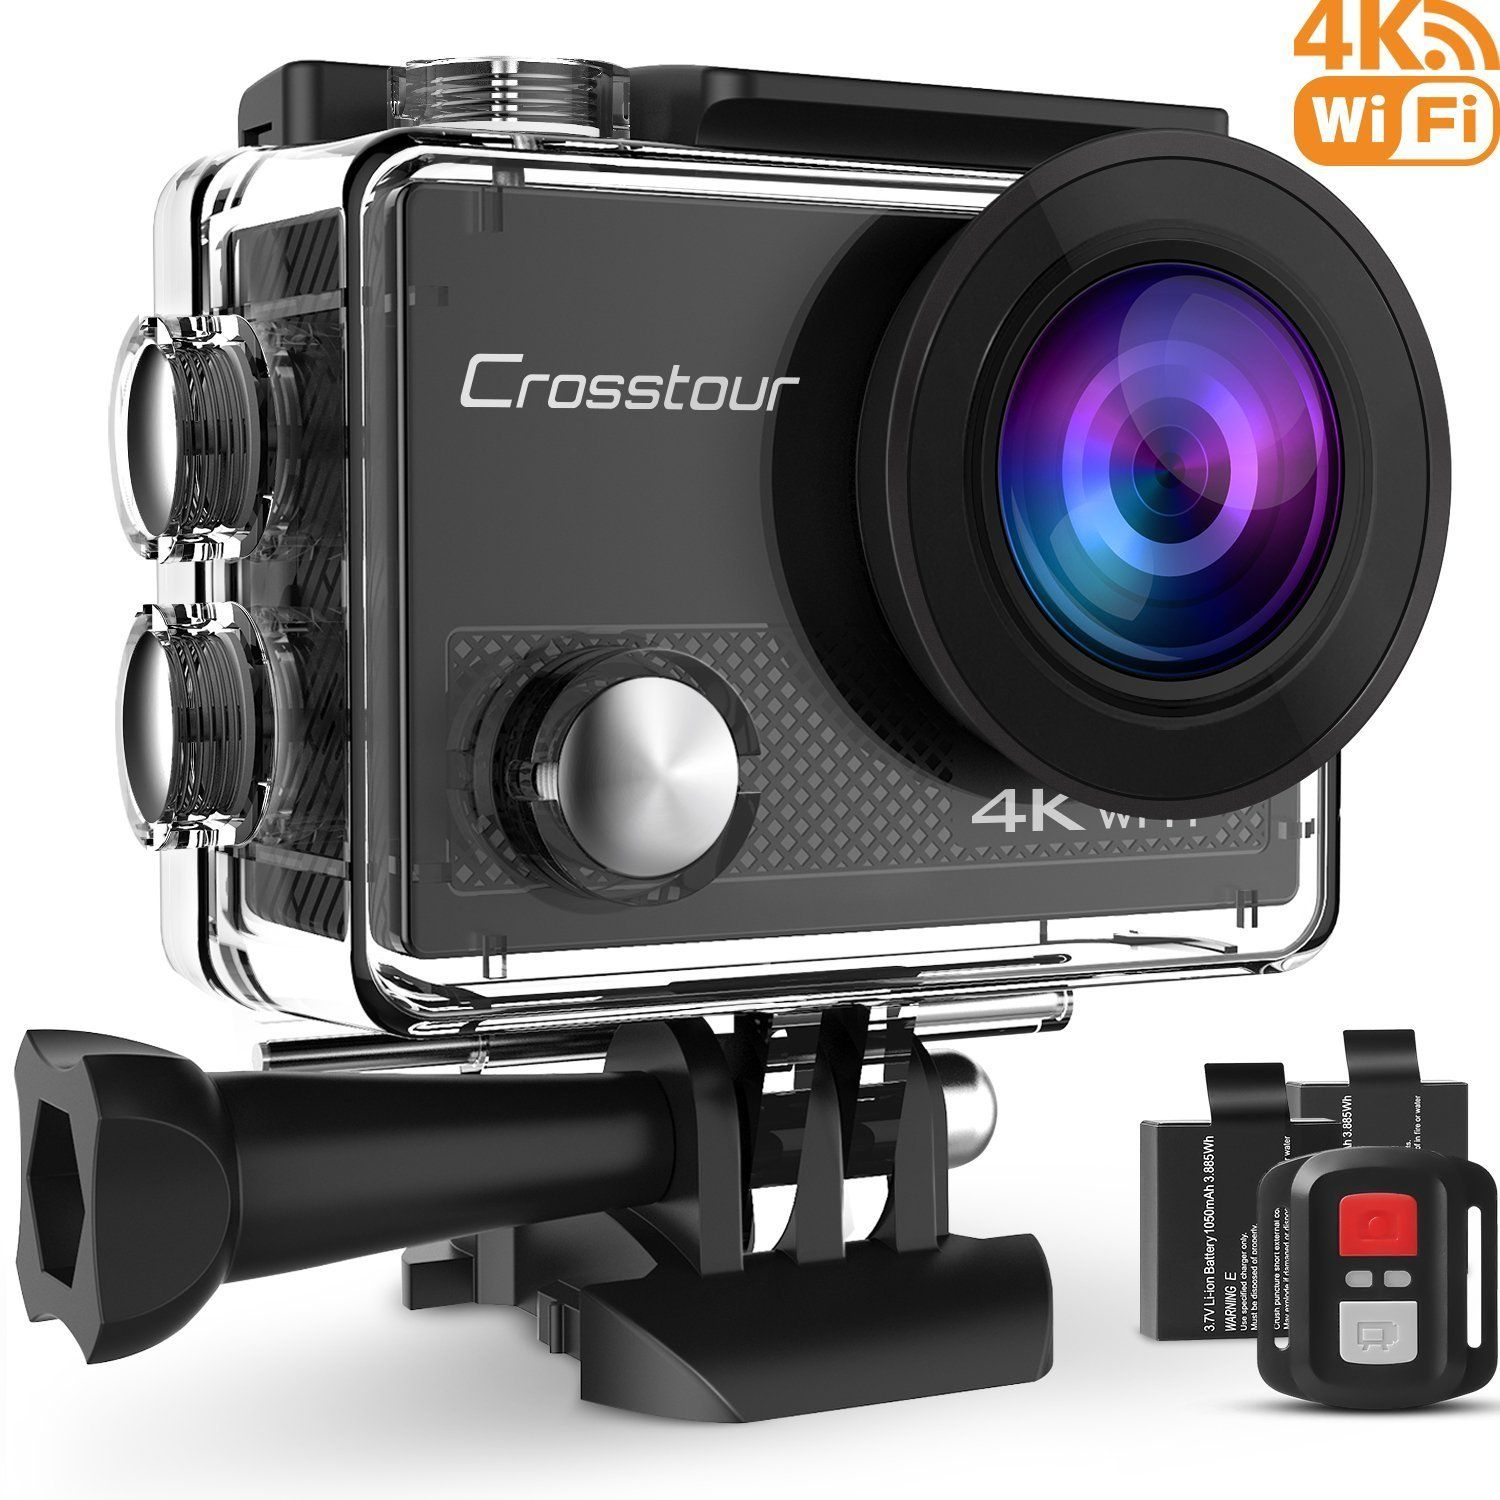 Crosstour Action Waterproof Camera 4K WIFI 16MP Ultra HD with Remote ...